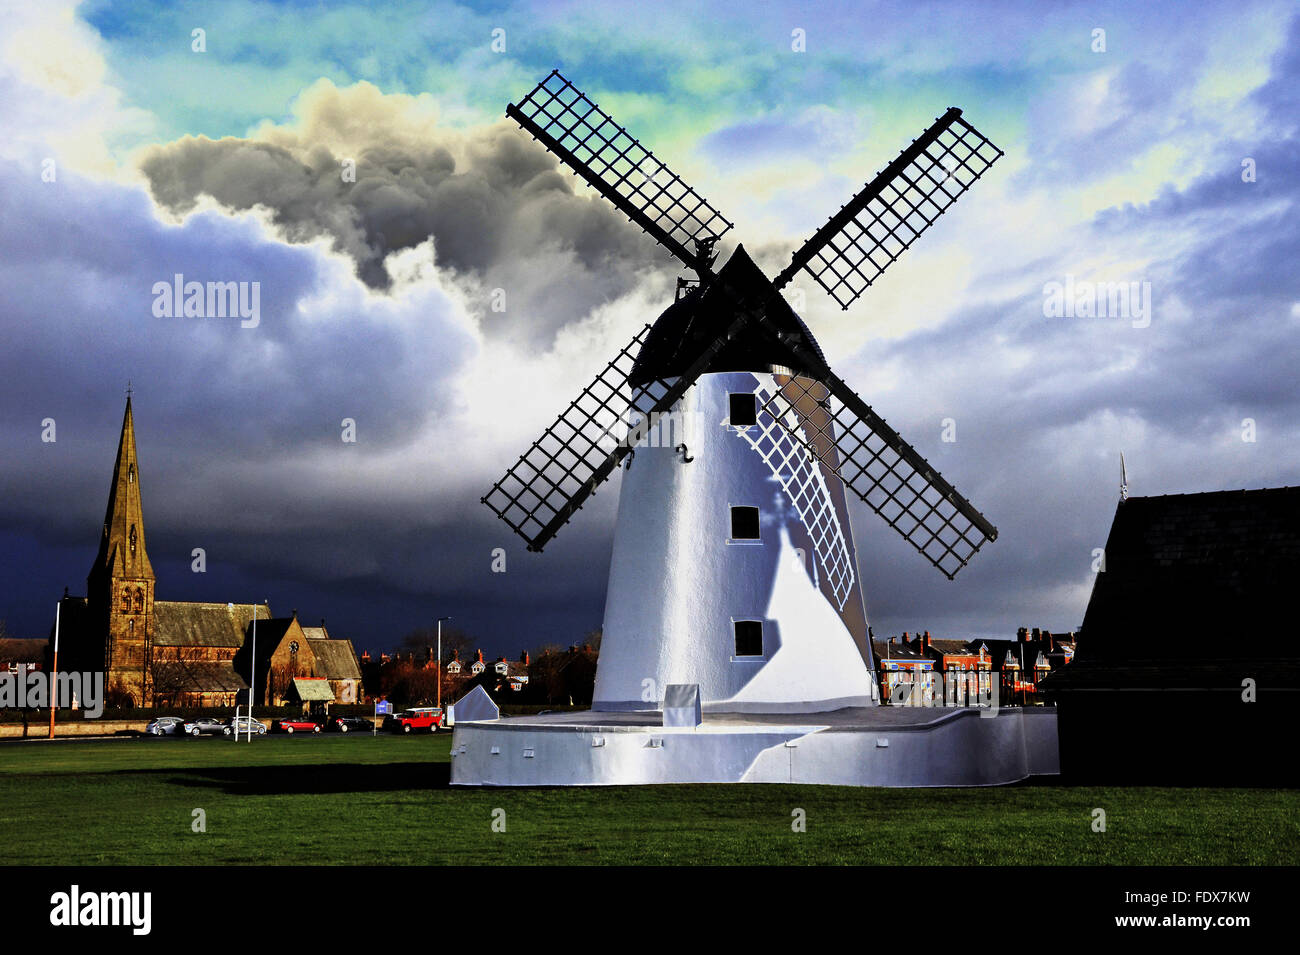 Lytham Windmill in Lancashire - Stock Image